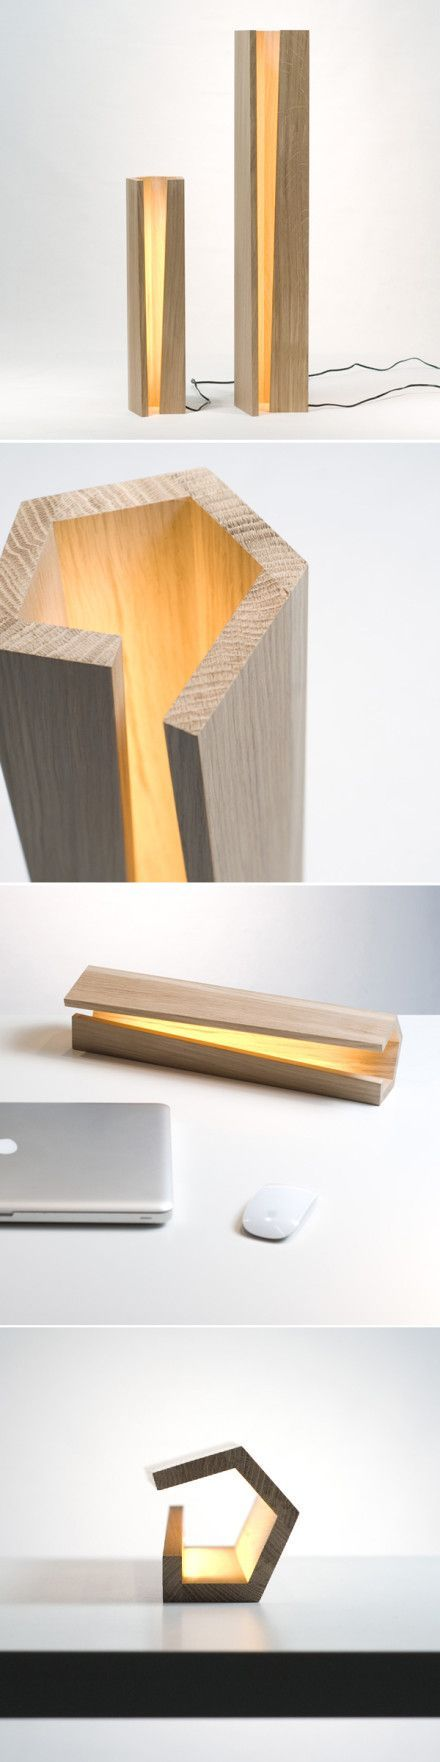 floor and desk lamps. Maybe a modified version of this for the base or too of a bookcase